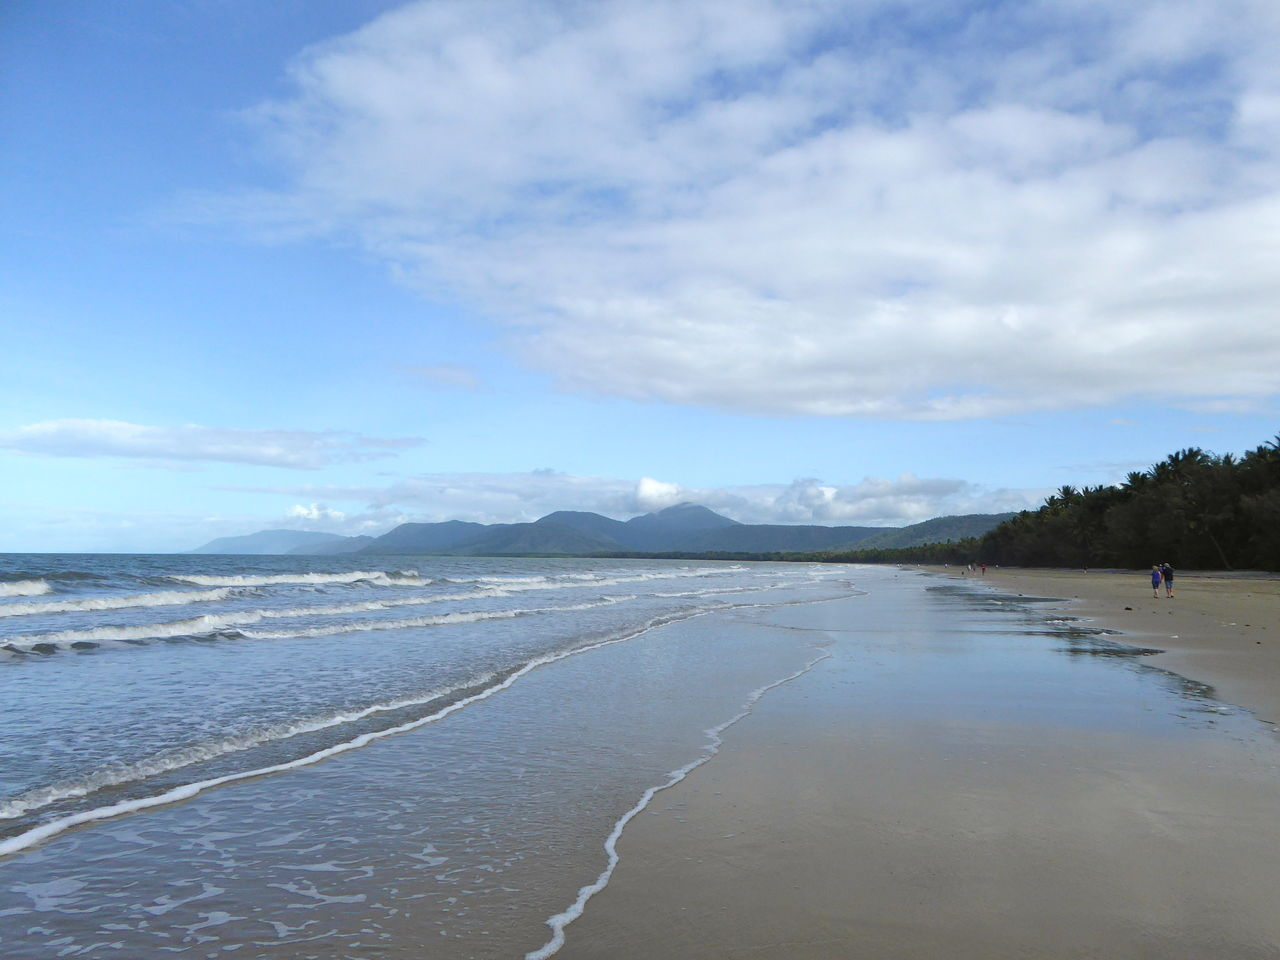 4 Mile Beach Port Douglas Australia Beach Beauty In Nature Broad Beach Cloud - Sky Clouds And Sky Holiday Paradise Idyllic Mountain Mountain Range Nature Scenics Sea Sky Small Waves Tourist Destination Tranquil Scene Tranquility Tropical Beach Water